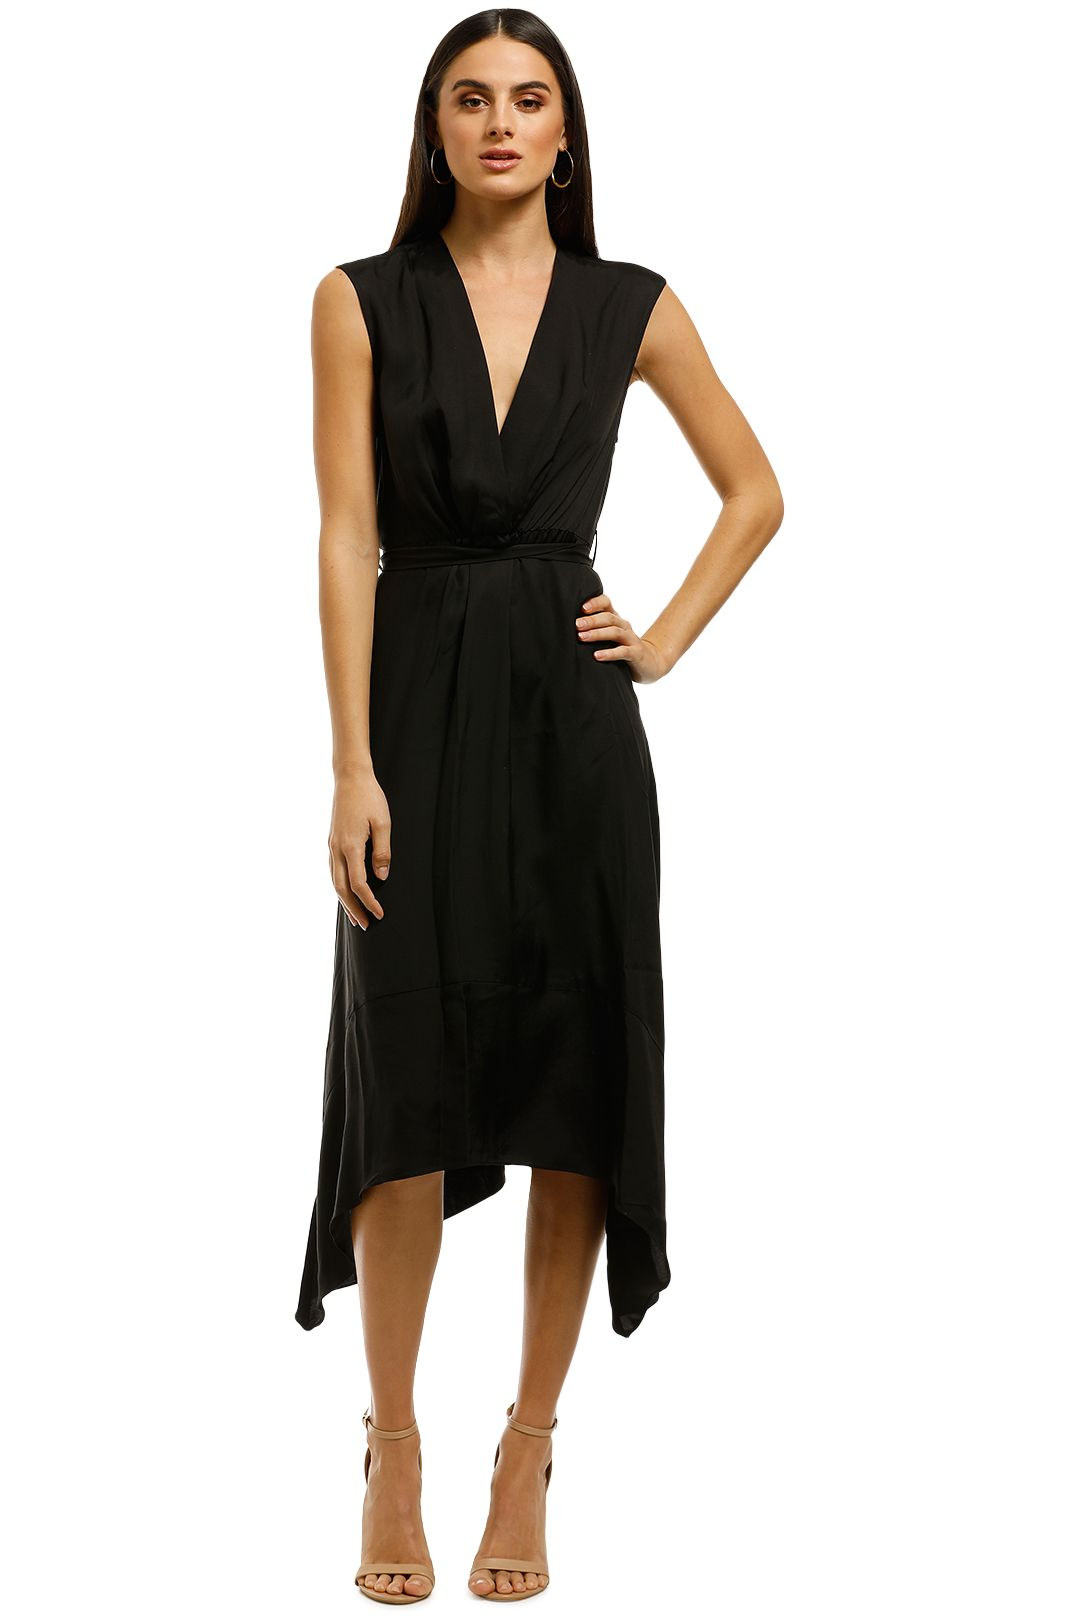 FWRD-The-Label-Leah-Dress-Black-Front